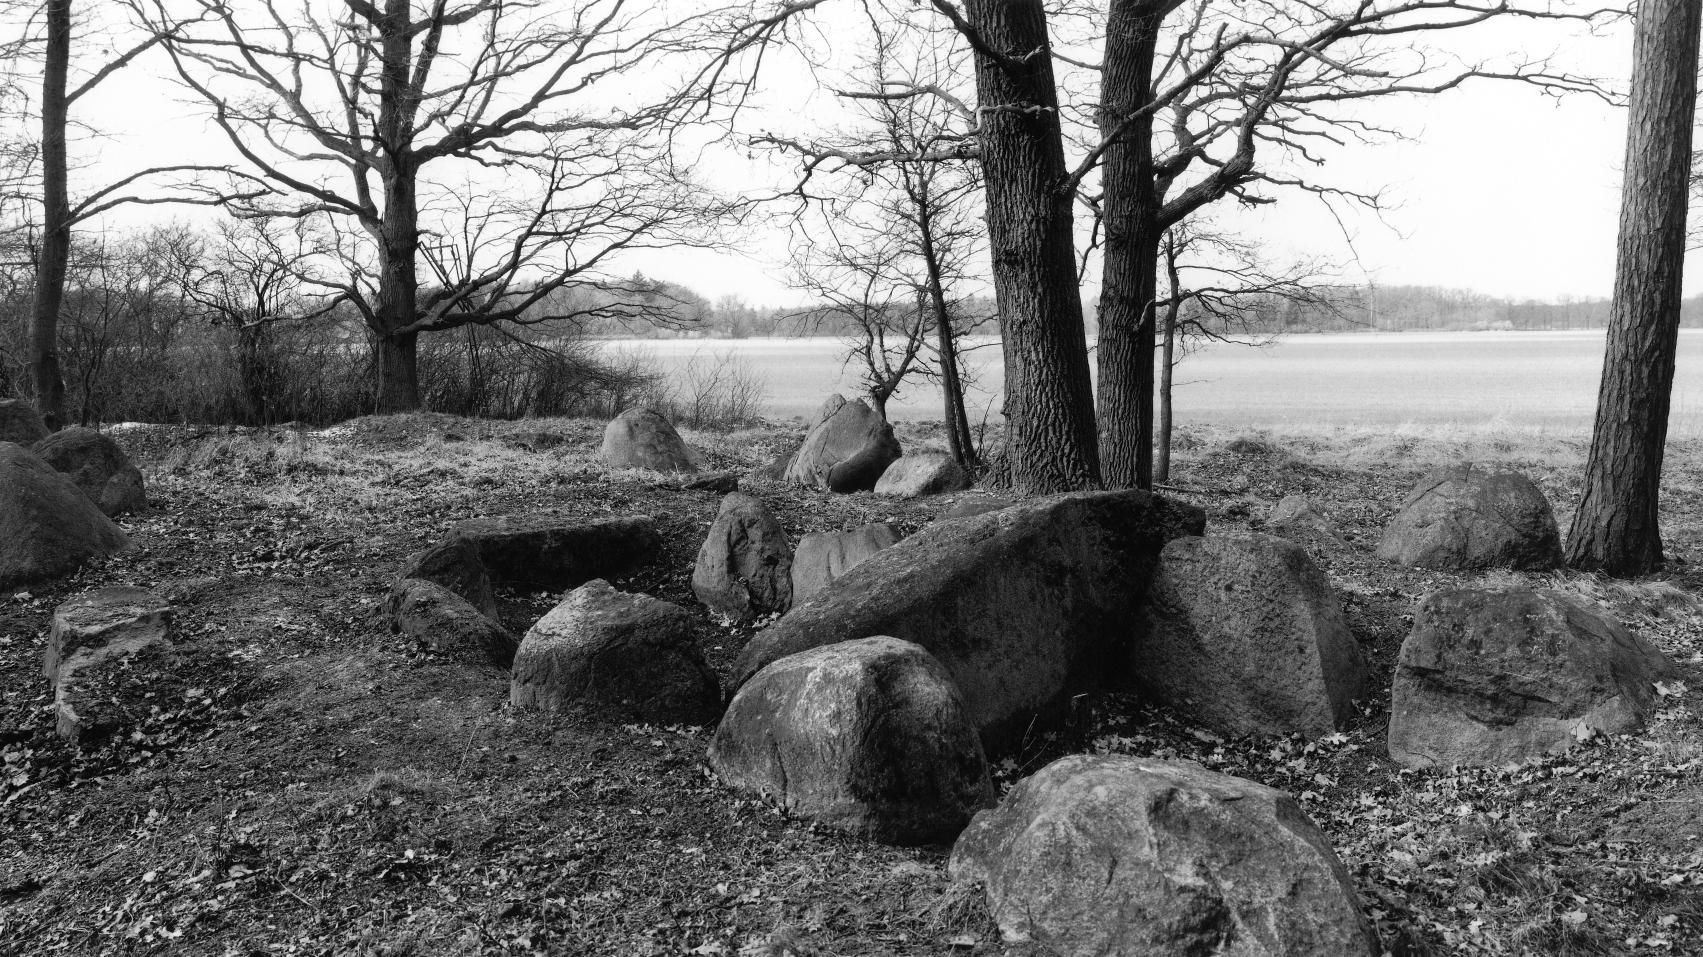 The large dolmen from Bretsch, site 3, in the district of Stendal. © State Office for Heritage Management and Archaeology Saxony-Anhalt, Juraj Lipták.